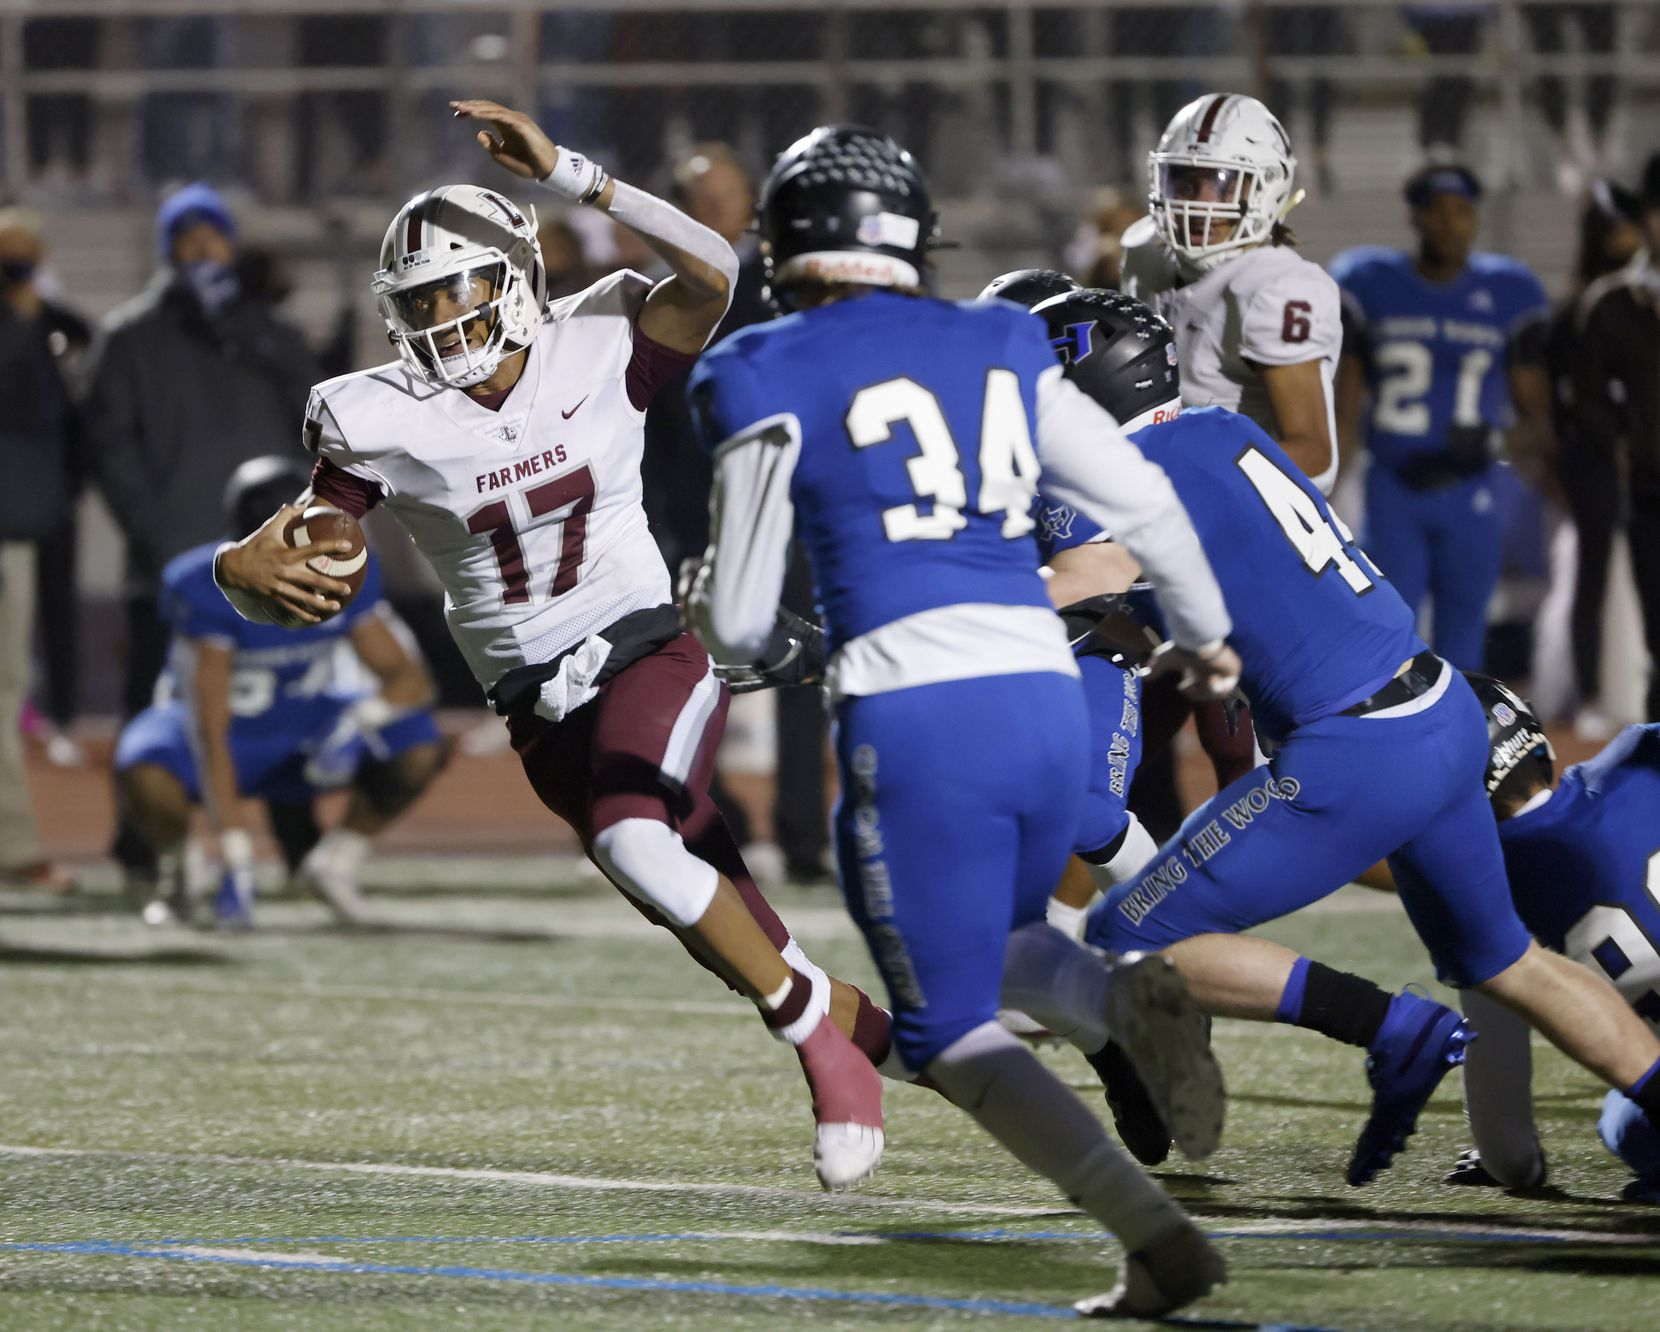 Lewisville quarterback  Taylen Green (17) tries to get past Hebron defenders Evan Hellwig and Carson Dean (44) during their District 6-6A high school football game on Dec. 4, 2020. (Michael Ainsworth/Special Contributor)